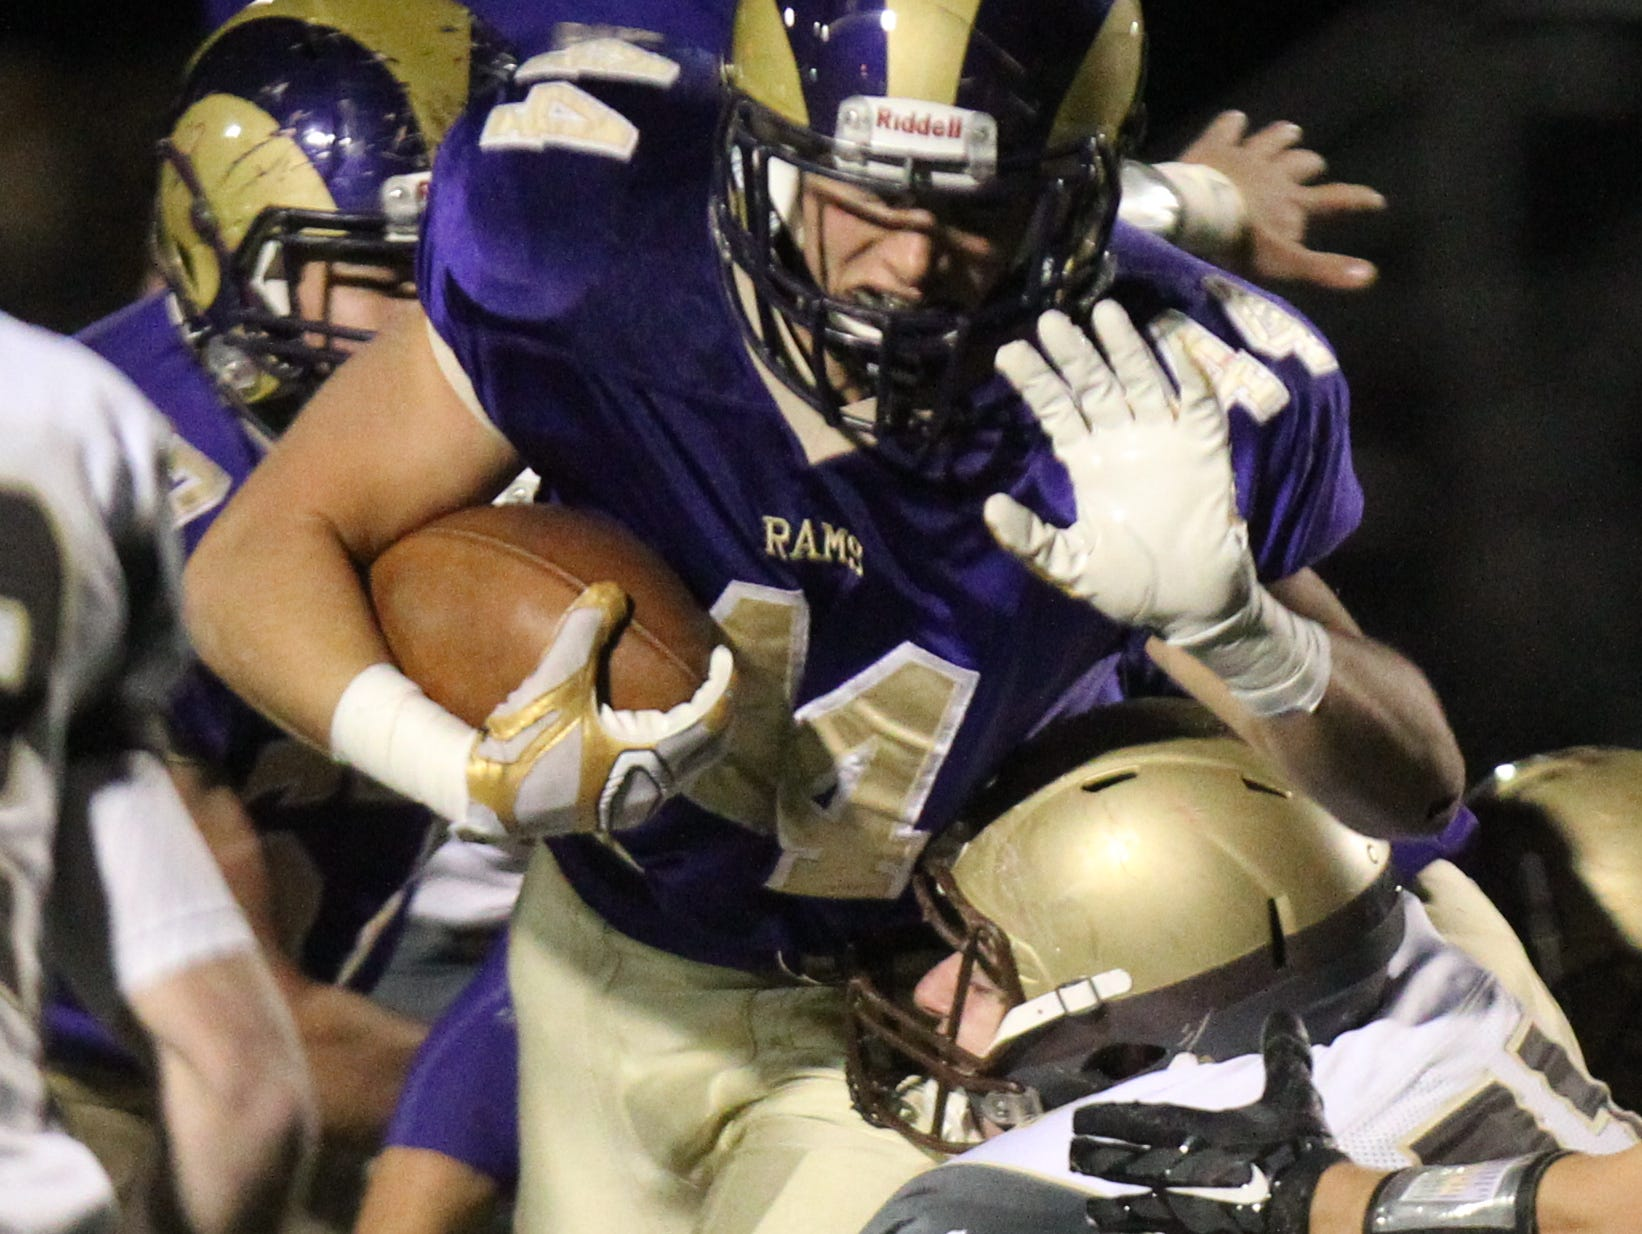 Clarkstown North's Michael Porco is tackled by Clarkstown South's Vince Maraia during their Class AA quarterfinal at Clarkstown North Oct. 23, 2015. 51